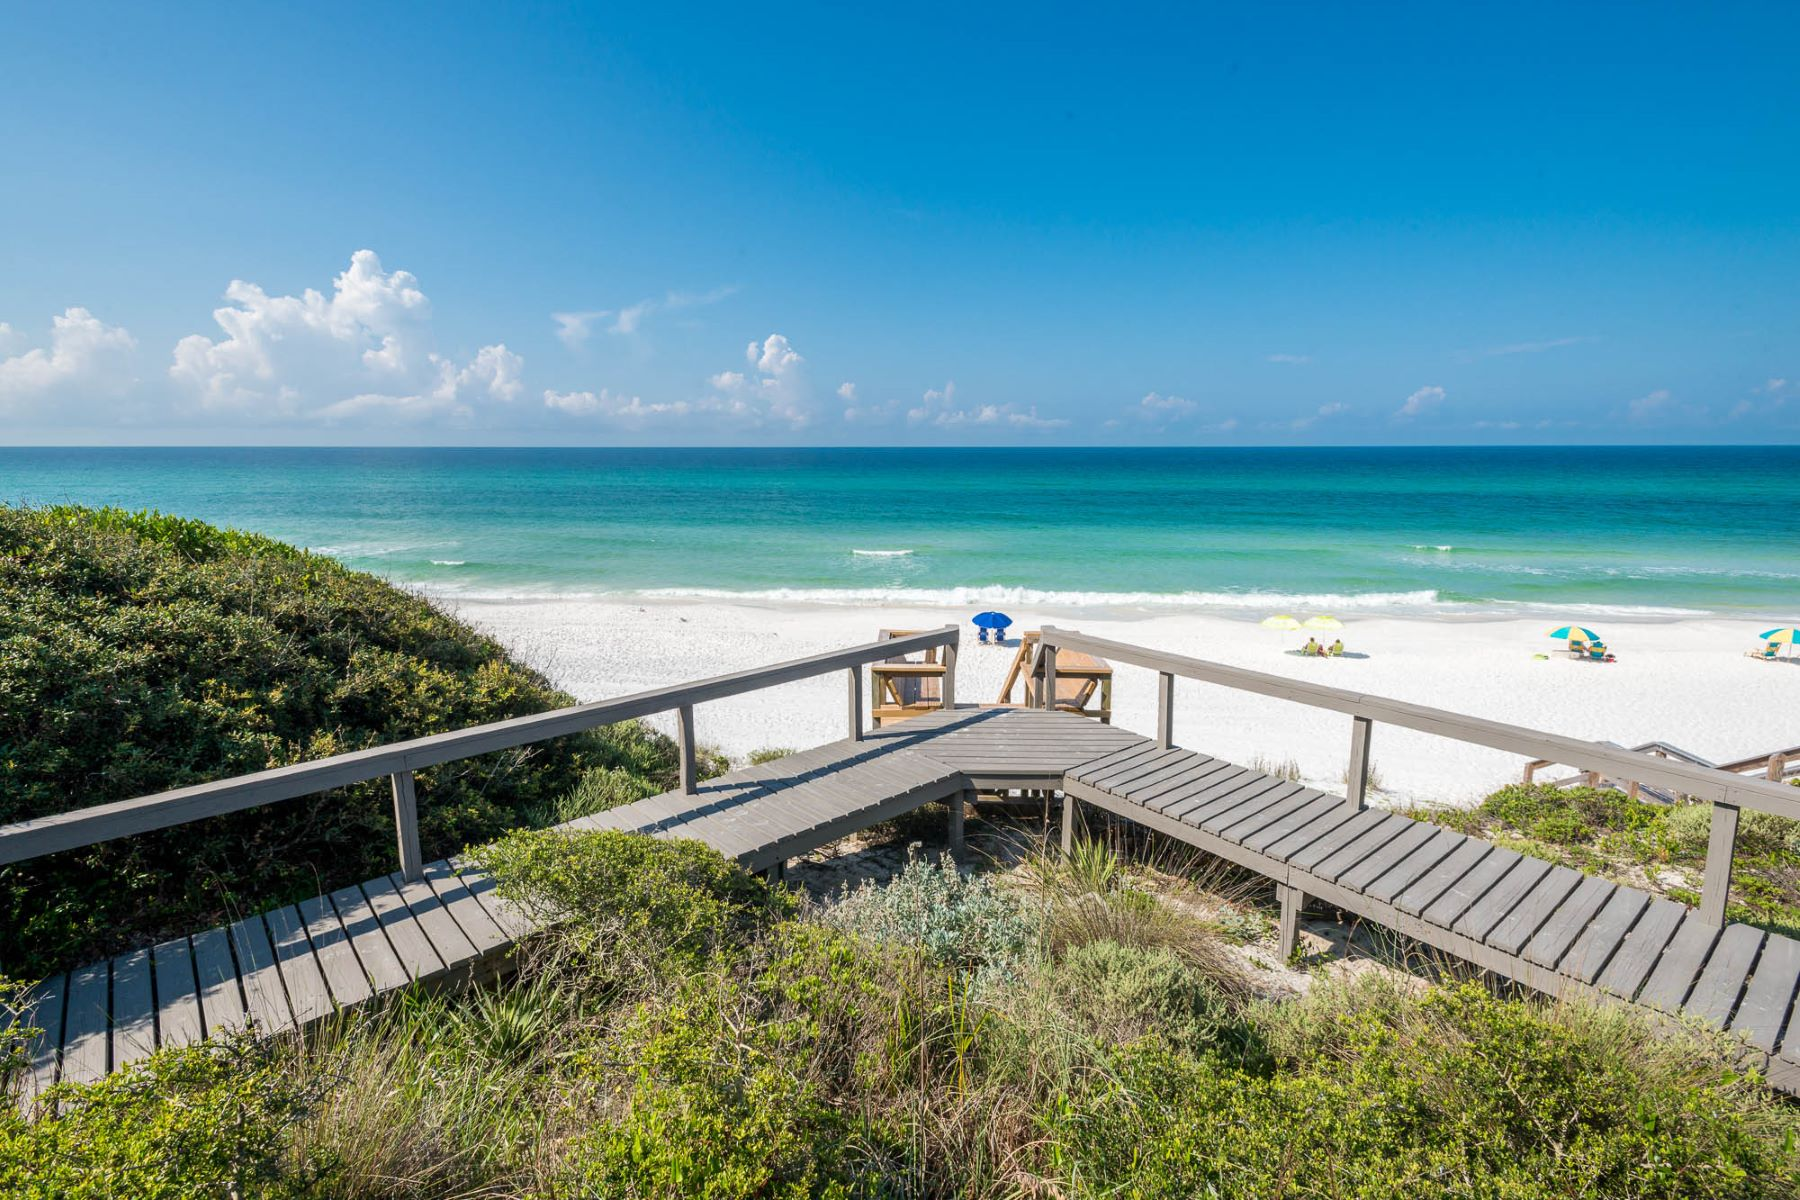 Land for Sale at 30A Beach Front Property with No Homeowner Association 8016 East County Highway 30A Seacrest, Florida 32461 United States